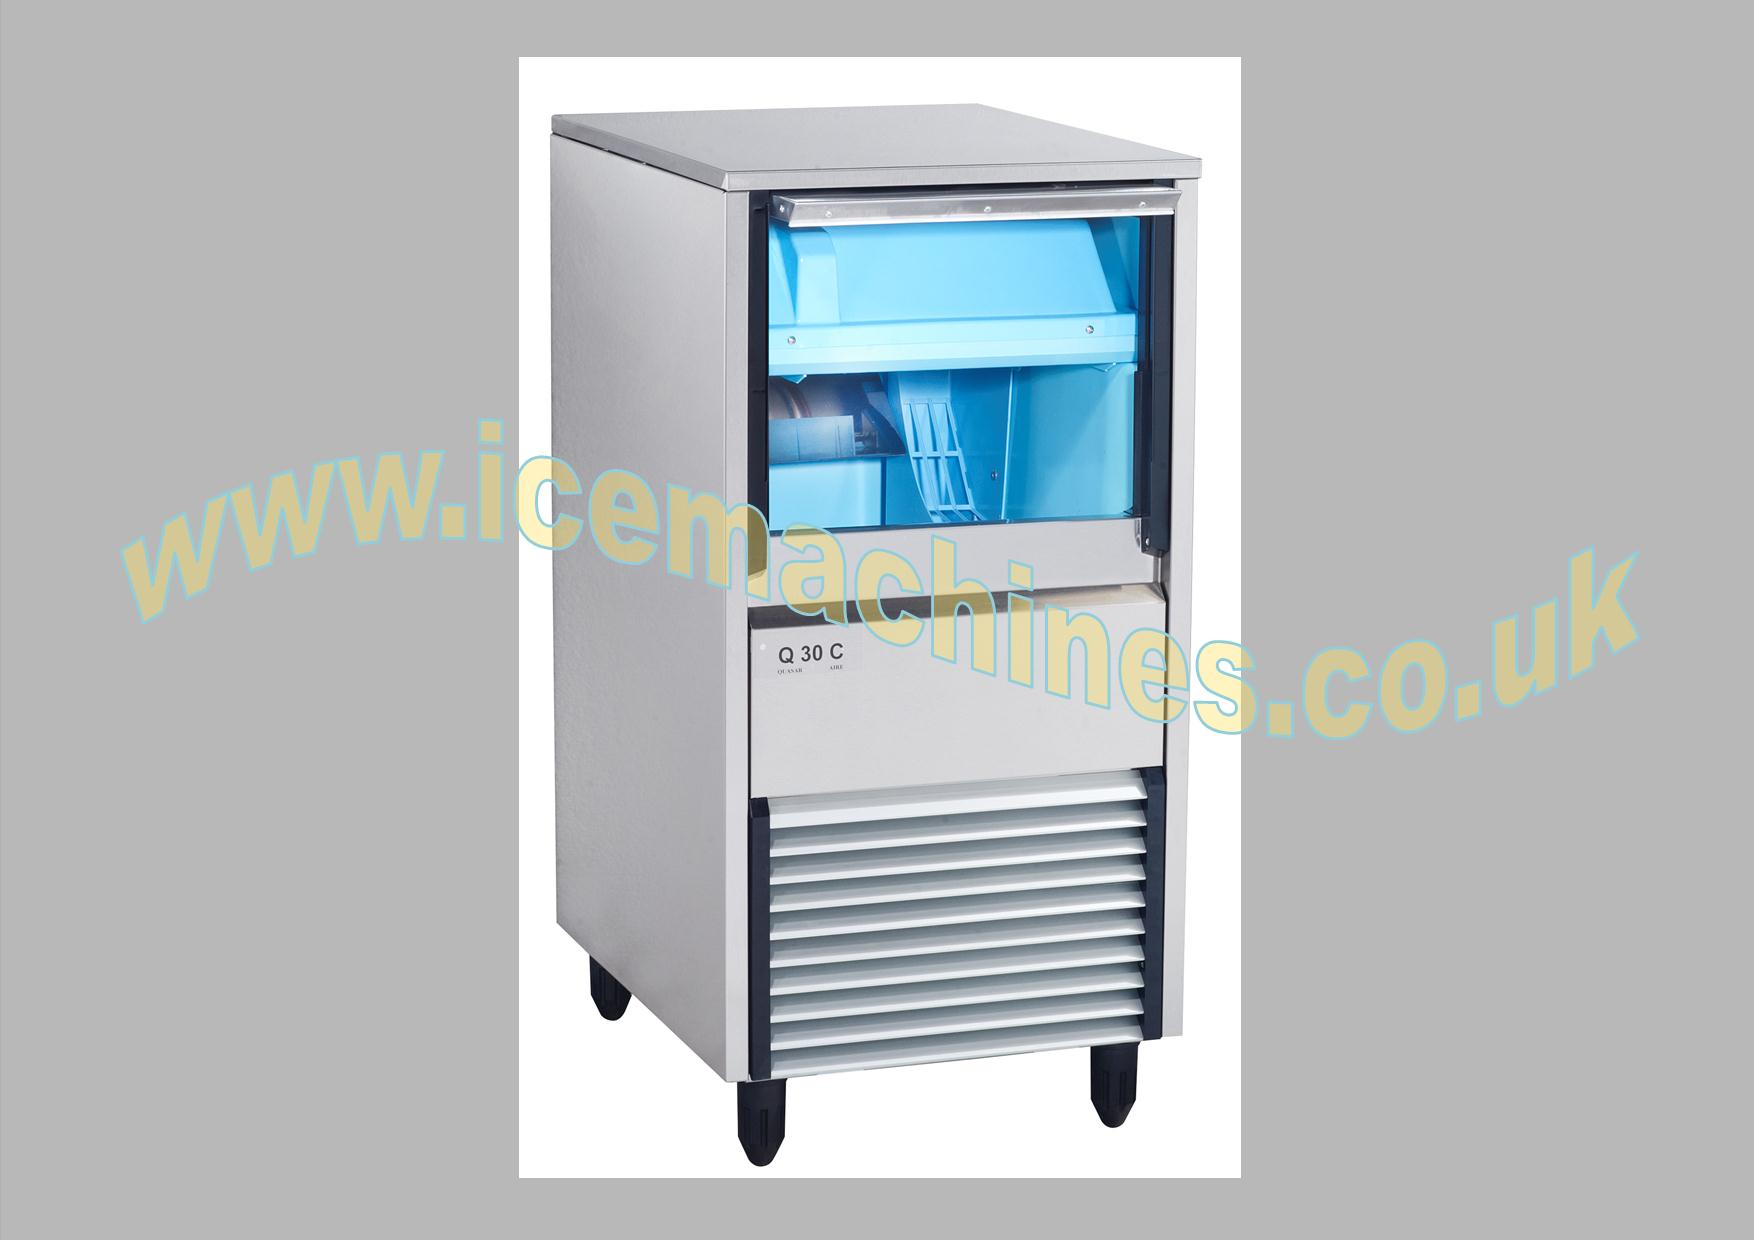 Quasar q30c ice maker.